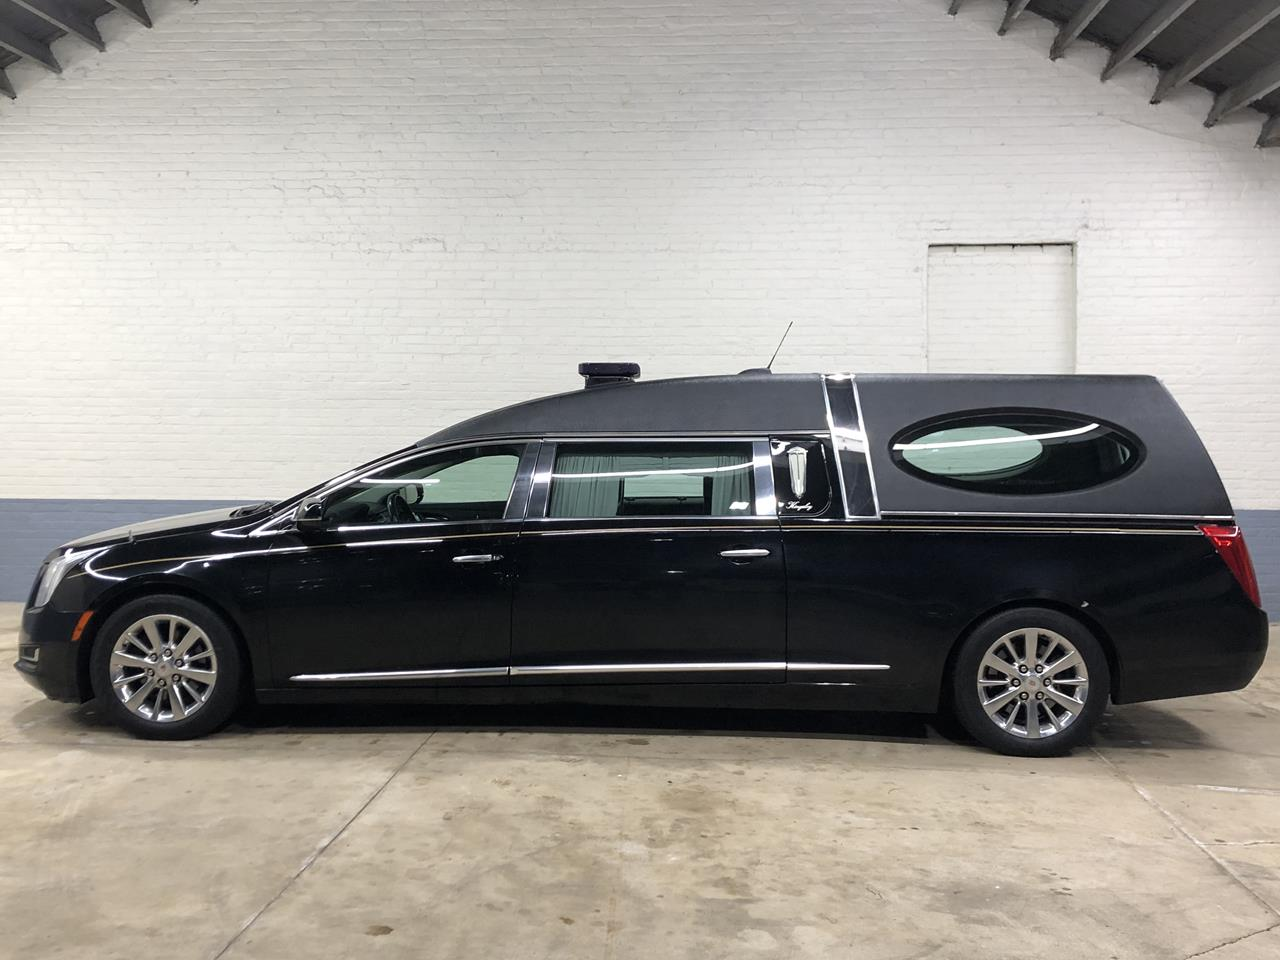 2015 Cadillac Eagle Kingsley Hearse